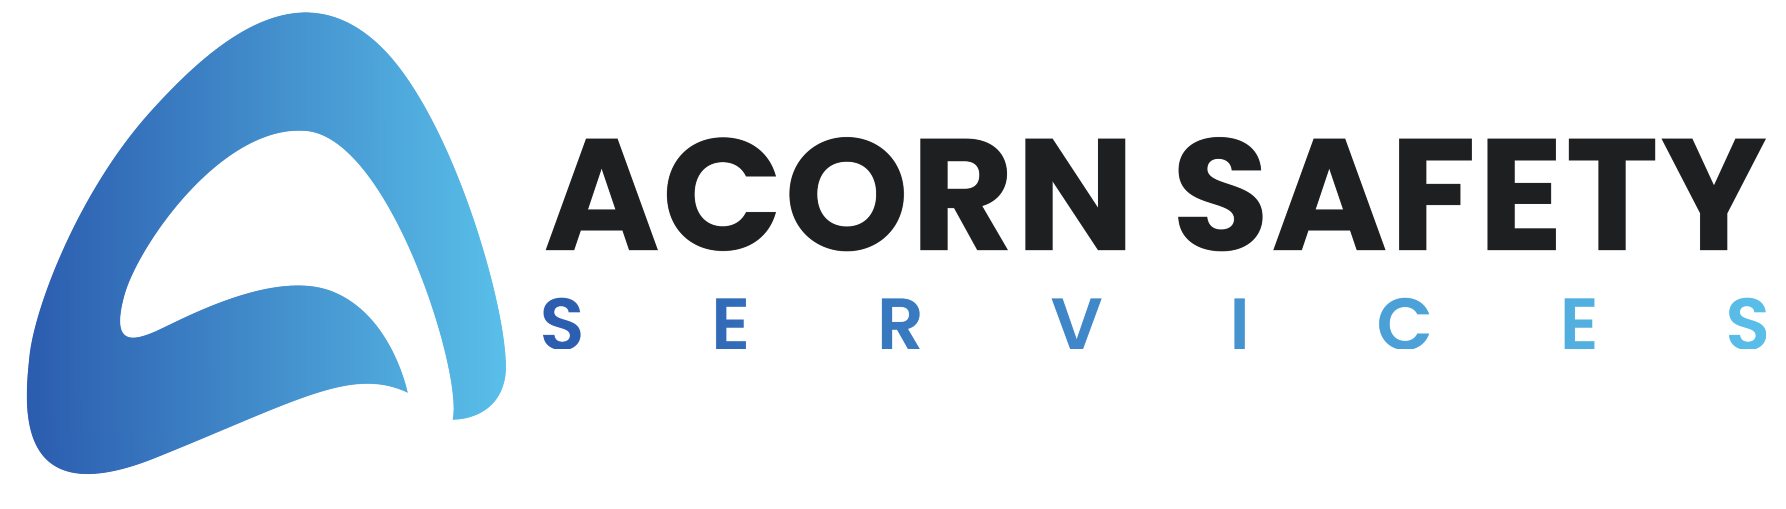 Acorn Safety Services